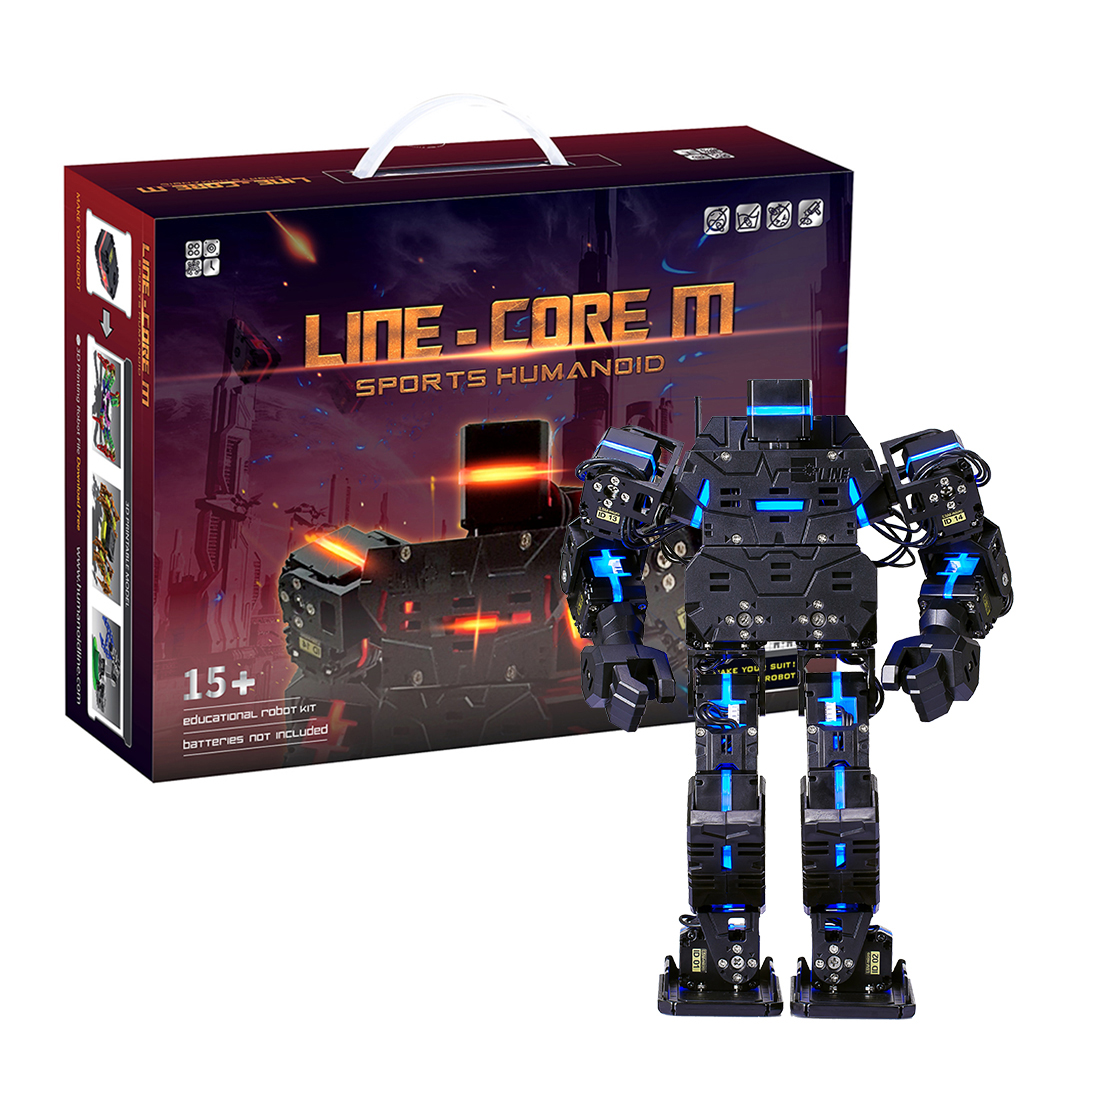 27cm My Robot Time LINE-Core M Graphical DIY Programmable Humanoid Robot Educational Robot Kit - Black/Red/Blue/White